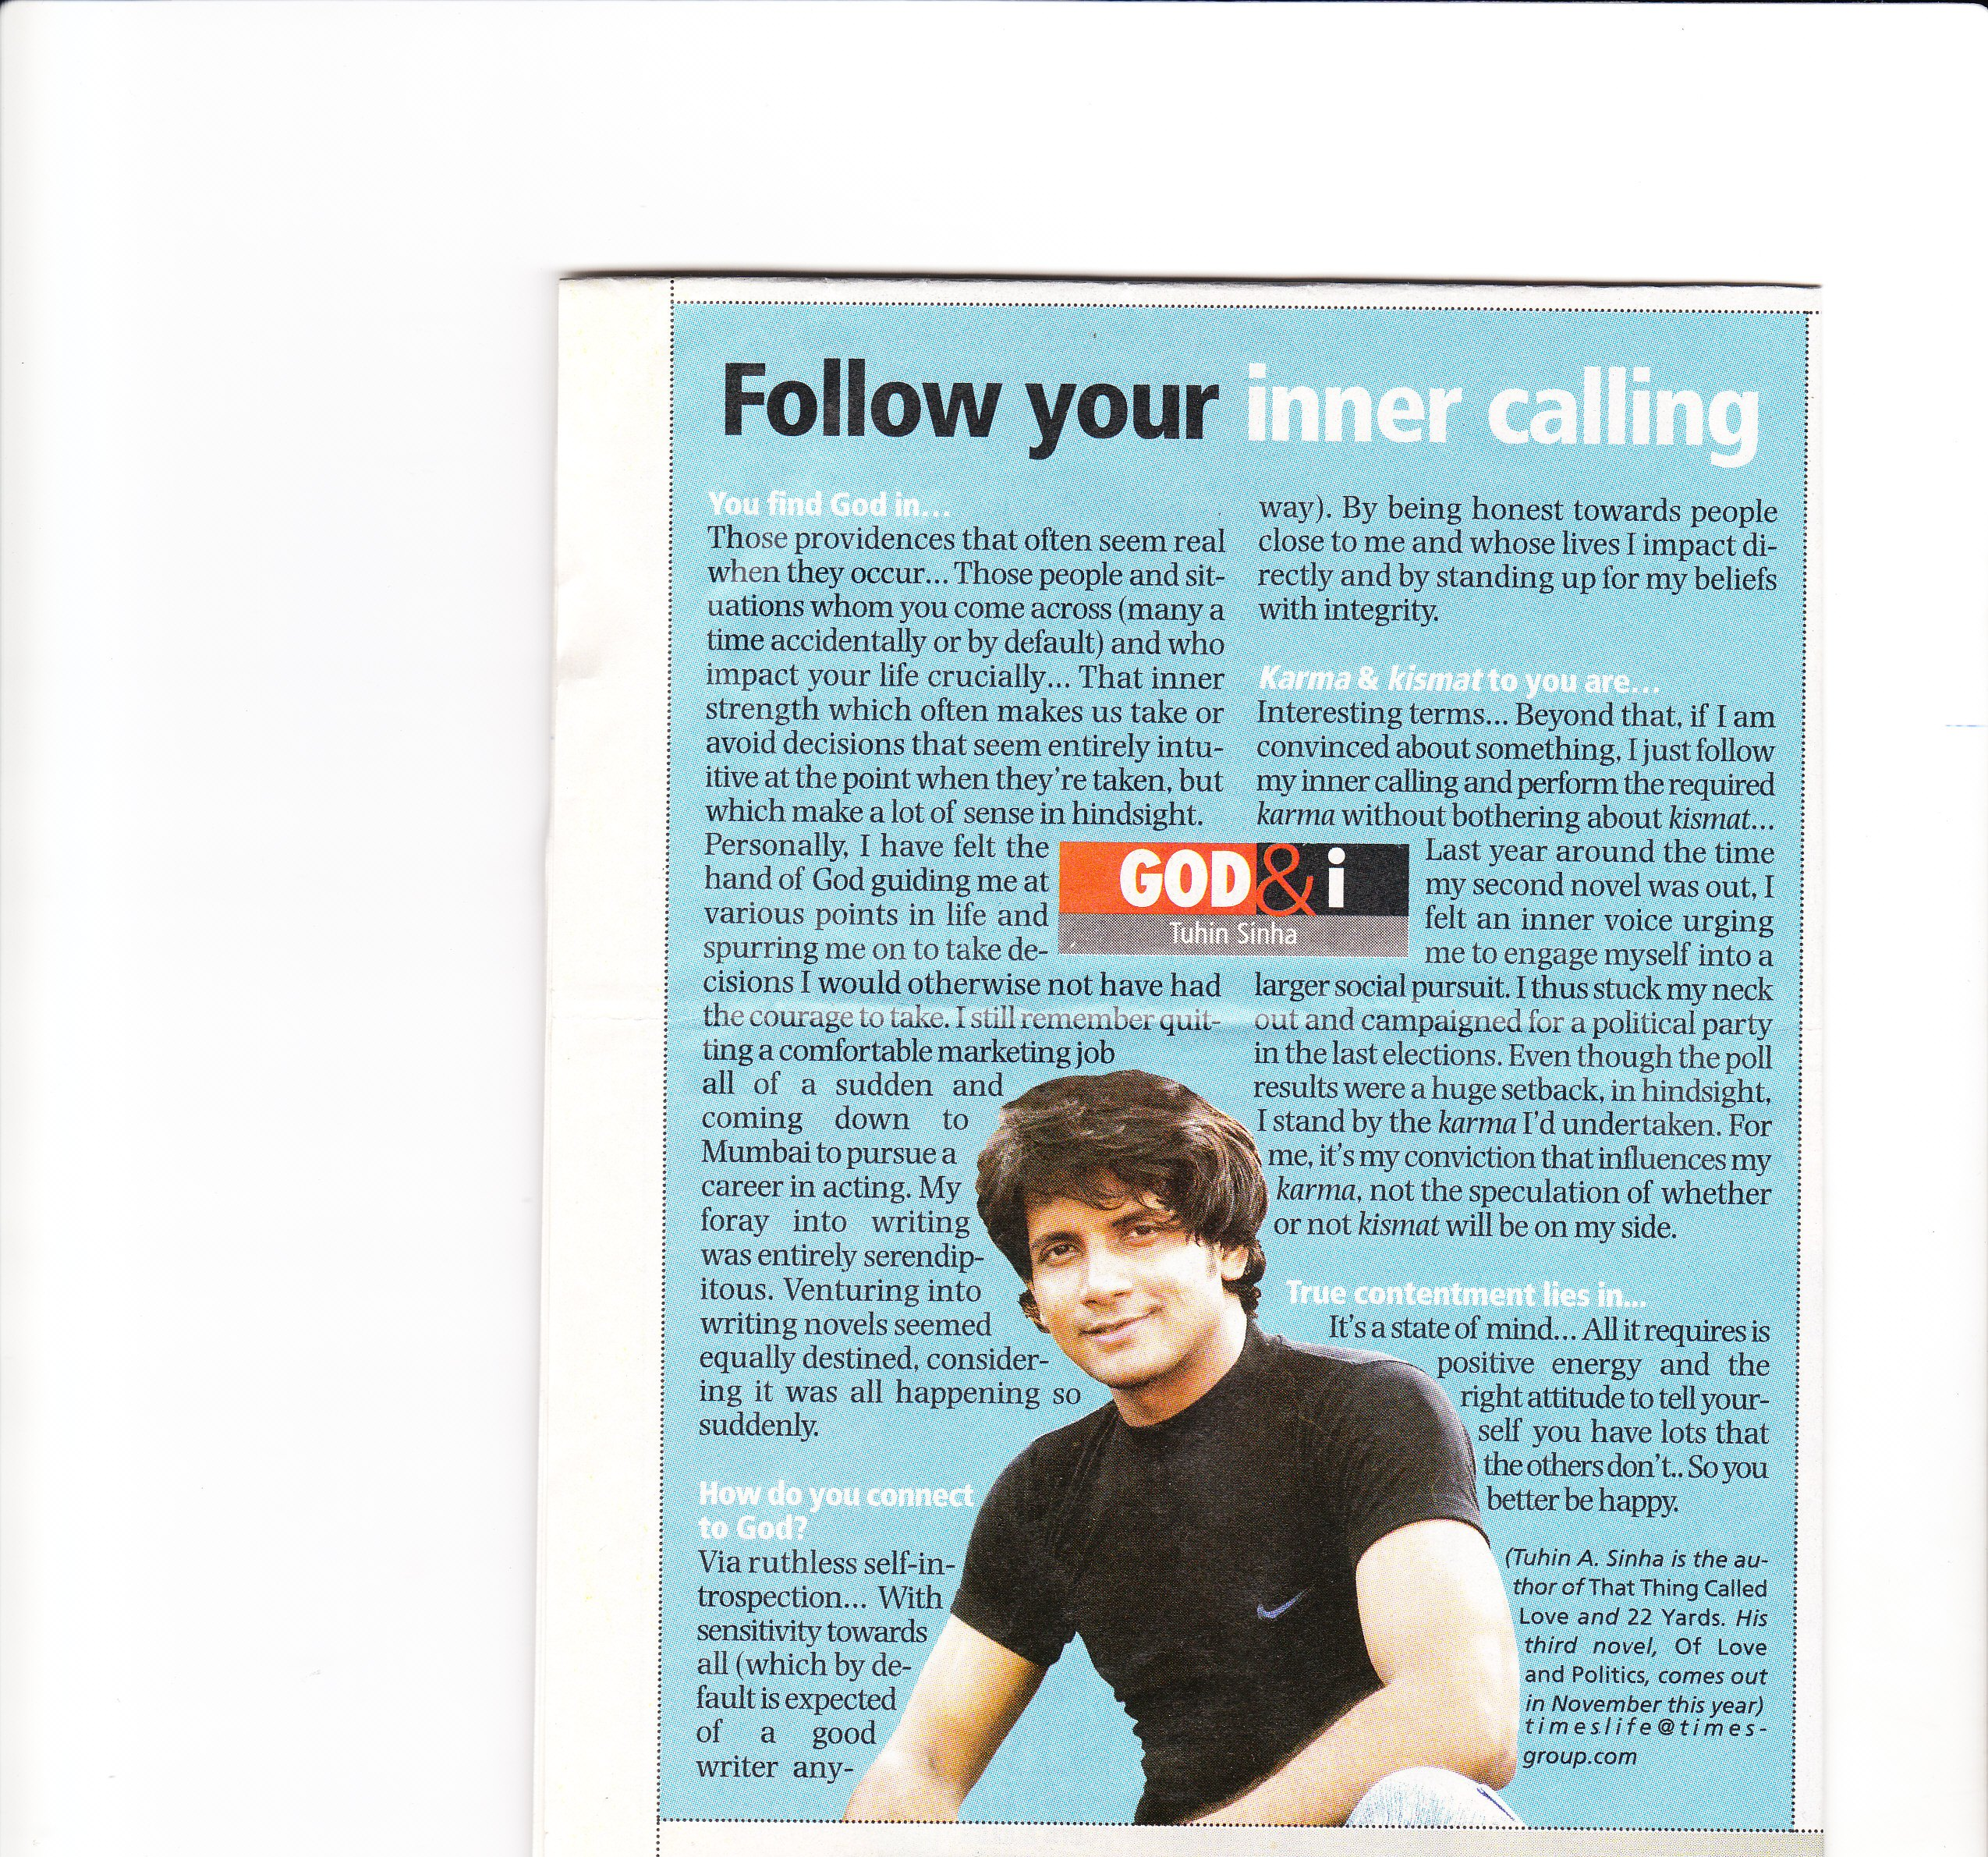 God and I, Times Life, August 23, 2009